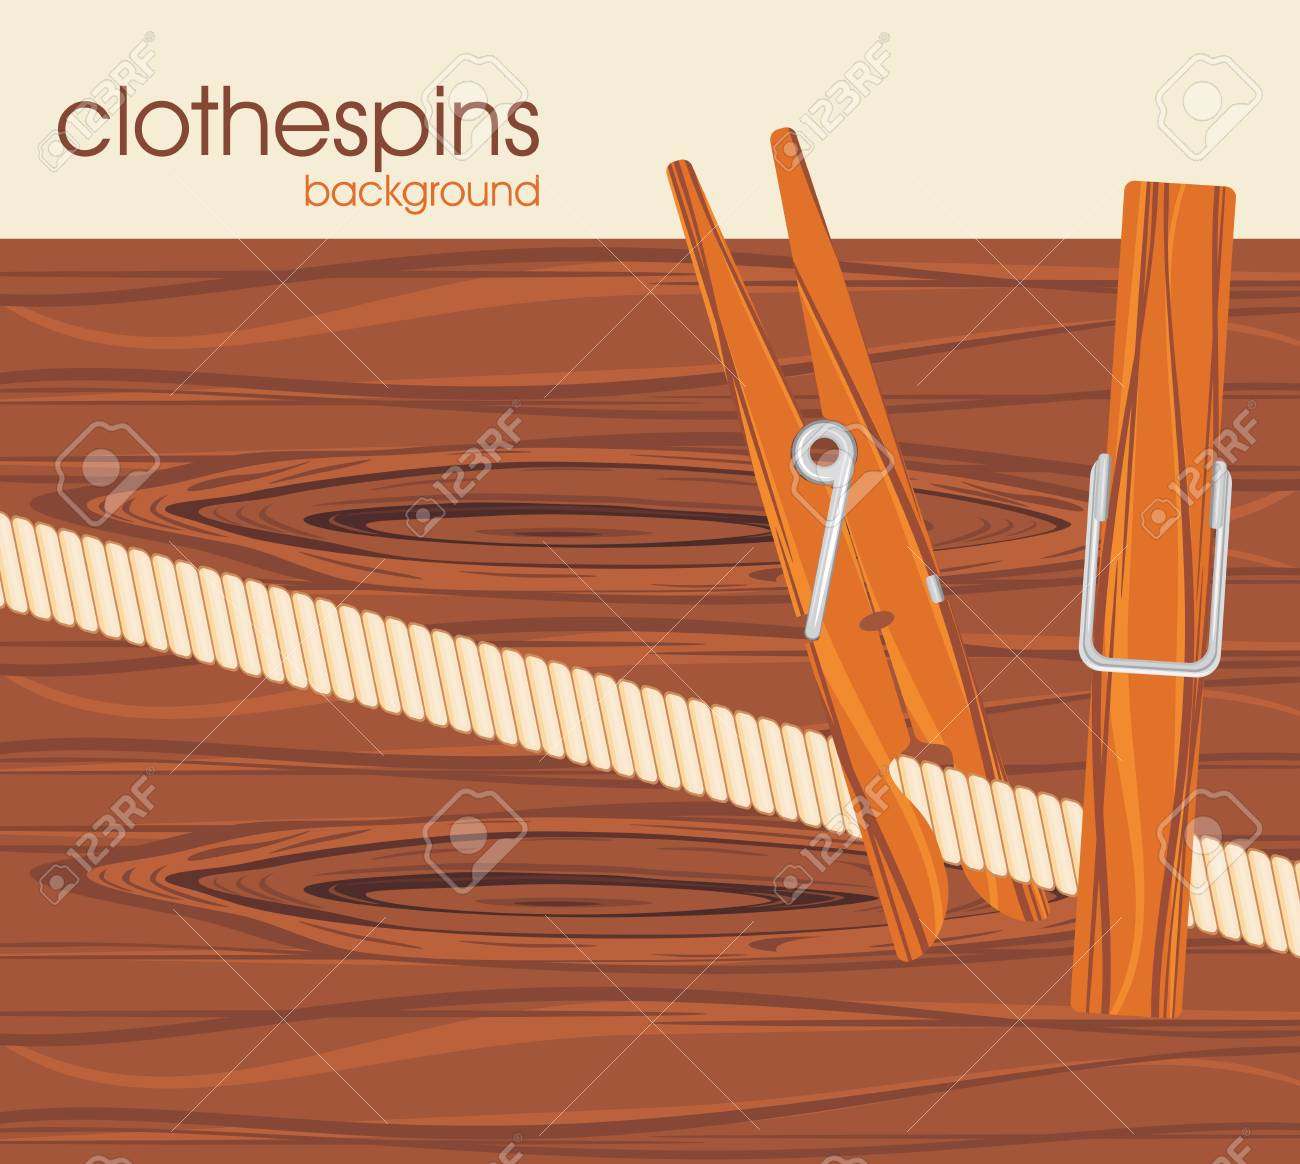 Clothespins on the wooden background Stock Vector - 19025663